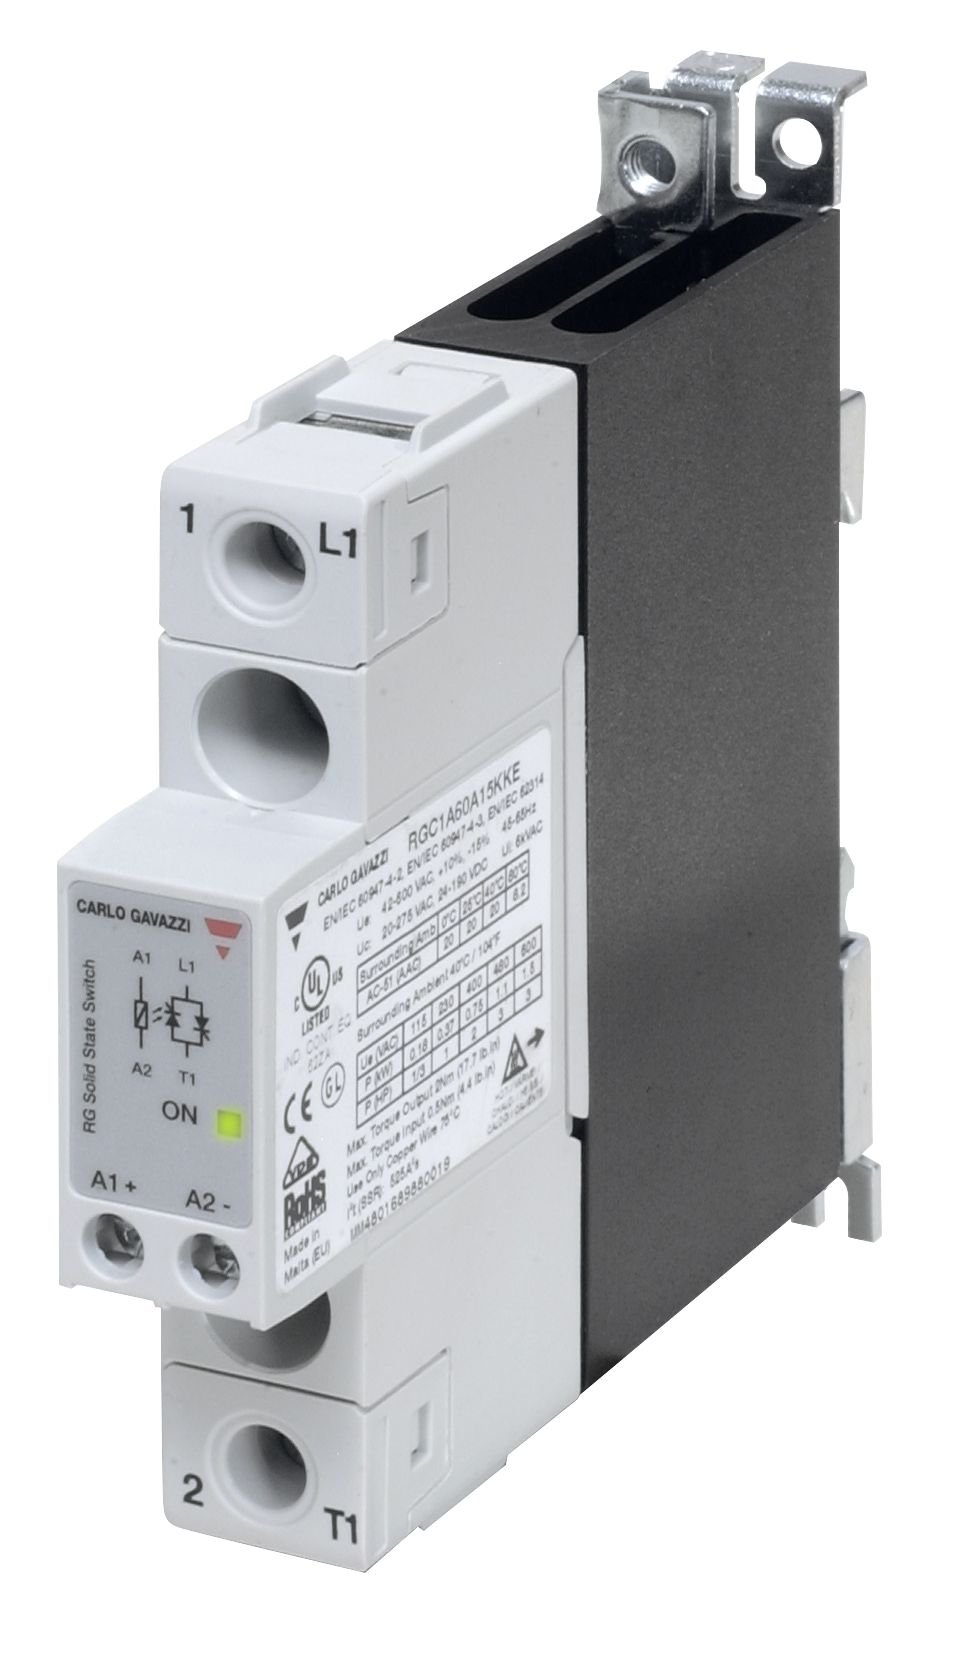 CARLO GAVAZZI RGC1A60D15KGU Solid State Relay and Contactor, Slim 17.5 mm Width, Maximum 20 amp AC Switching, Up to 3 hp Rated, 3-32 VDC Control Voltage, 42-600 VAC Switching, 1200 Vp Blocking Voltage, IP20 Cover, Diagnostic LEDs, 9.2 oz. Size, 27 mm Heig by CARLO GAVAZZI